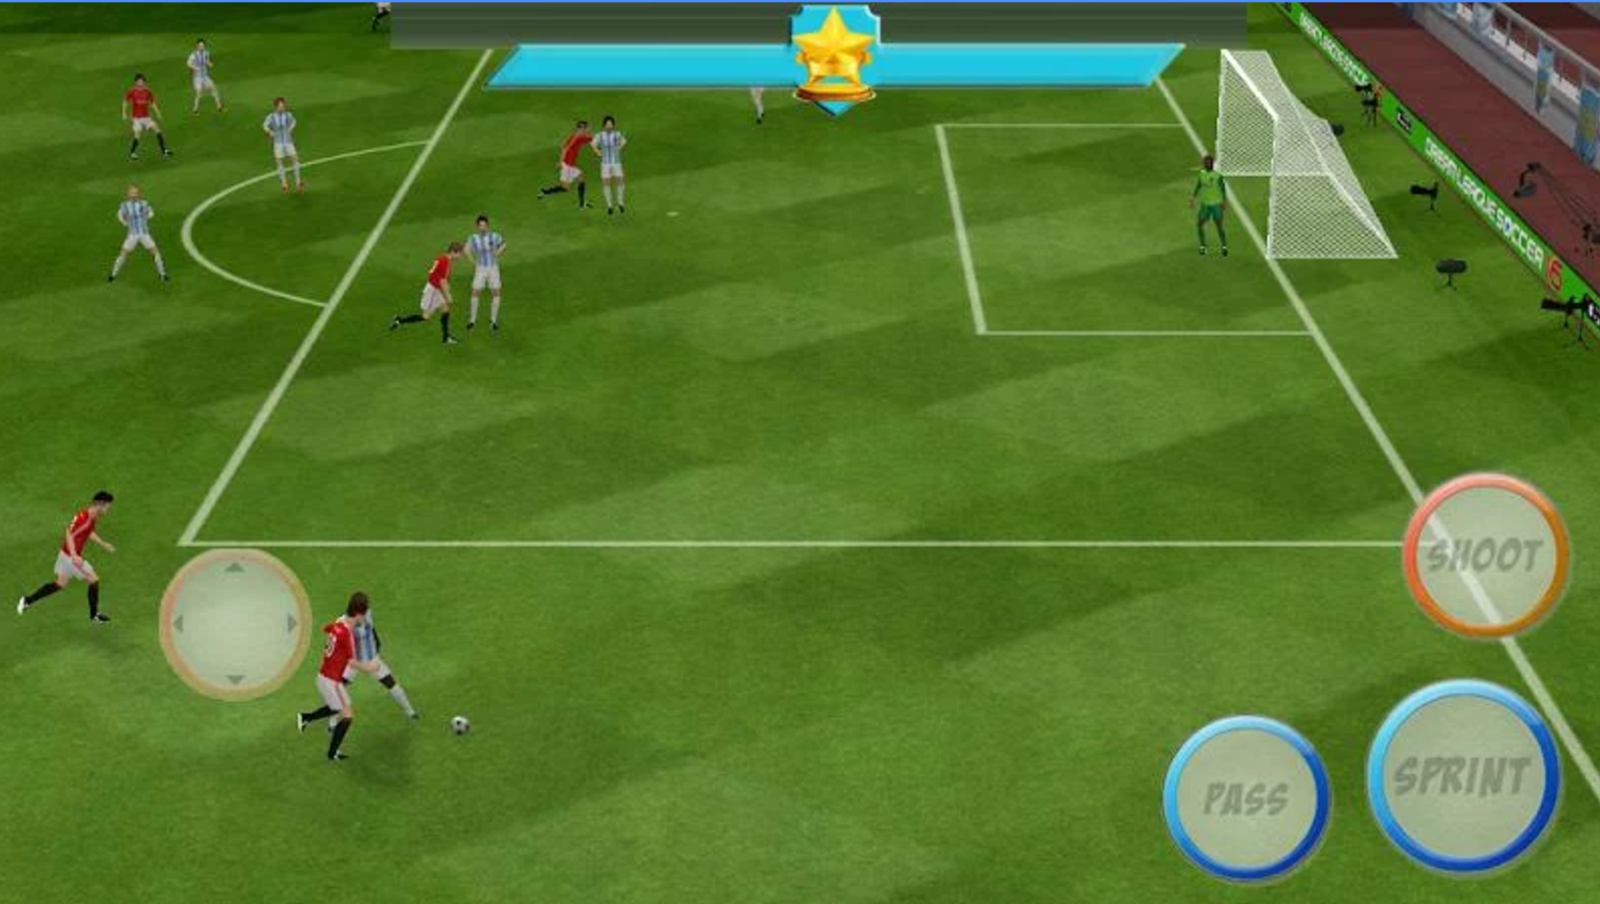 best football game for android 2017